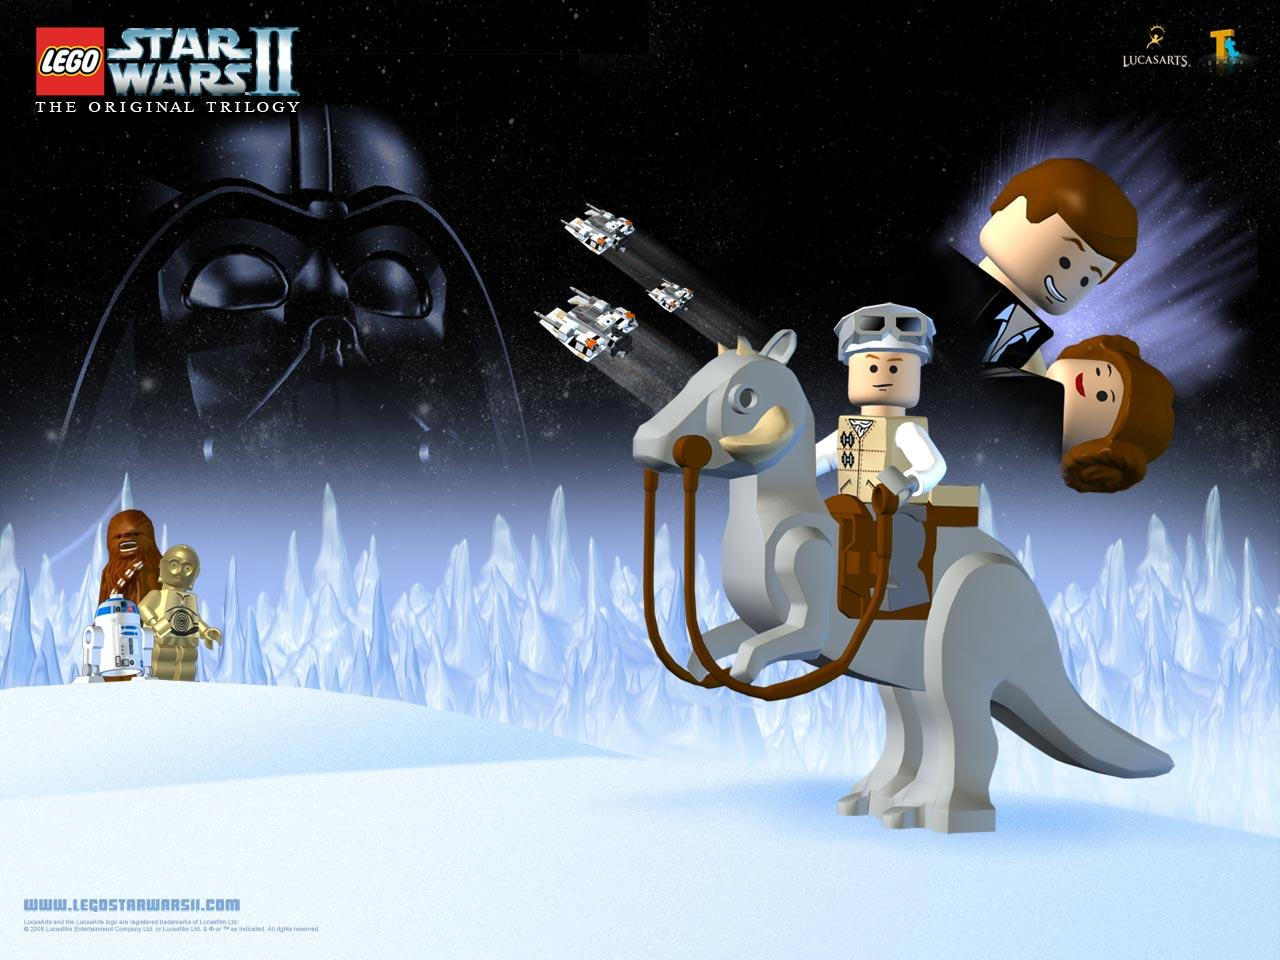 lego images lego star wars wallpaper hd wallpaper and